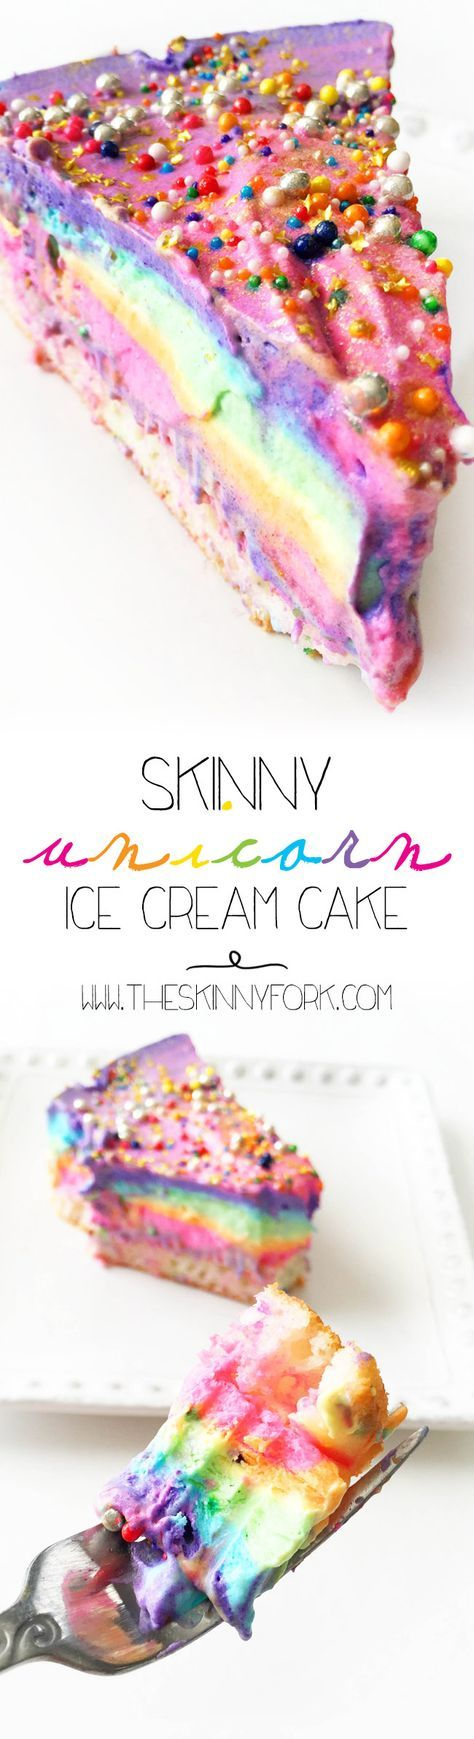 Check out this Skinny Unicorn Ice Cream Cake to add some much needed color, sparkle, and joy to your day! Don't worry, this ice cream cake is super easy to make using @curiouscreamery  Ice Cream Cake Mix!  #Ad #CuriousCreamery http://TheSkinnyFork.com | Skinny & Healthy Recipes